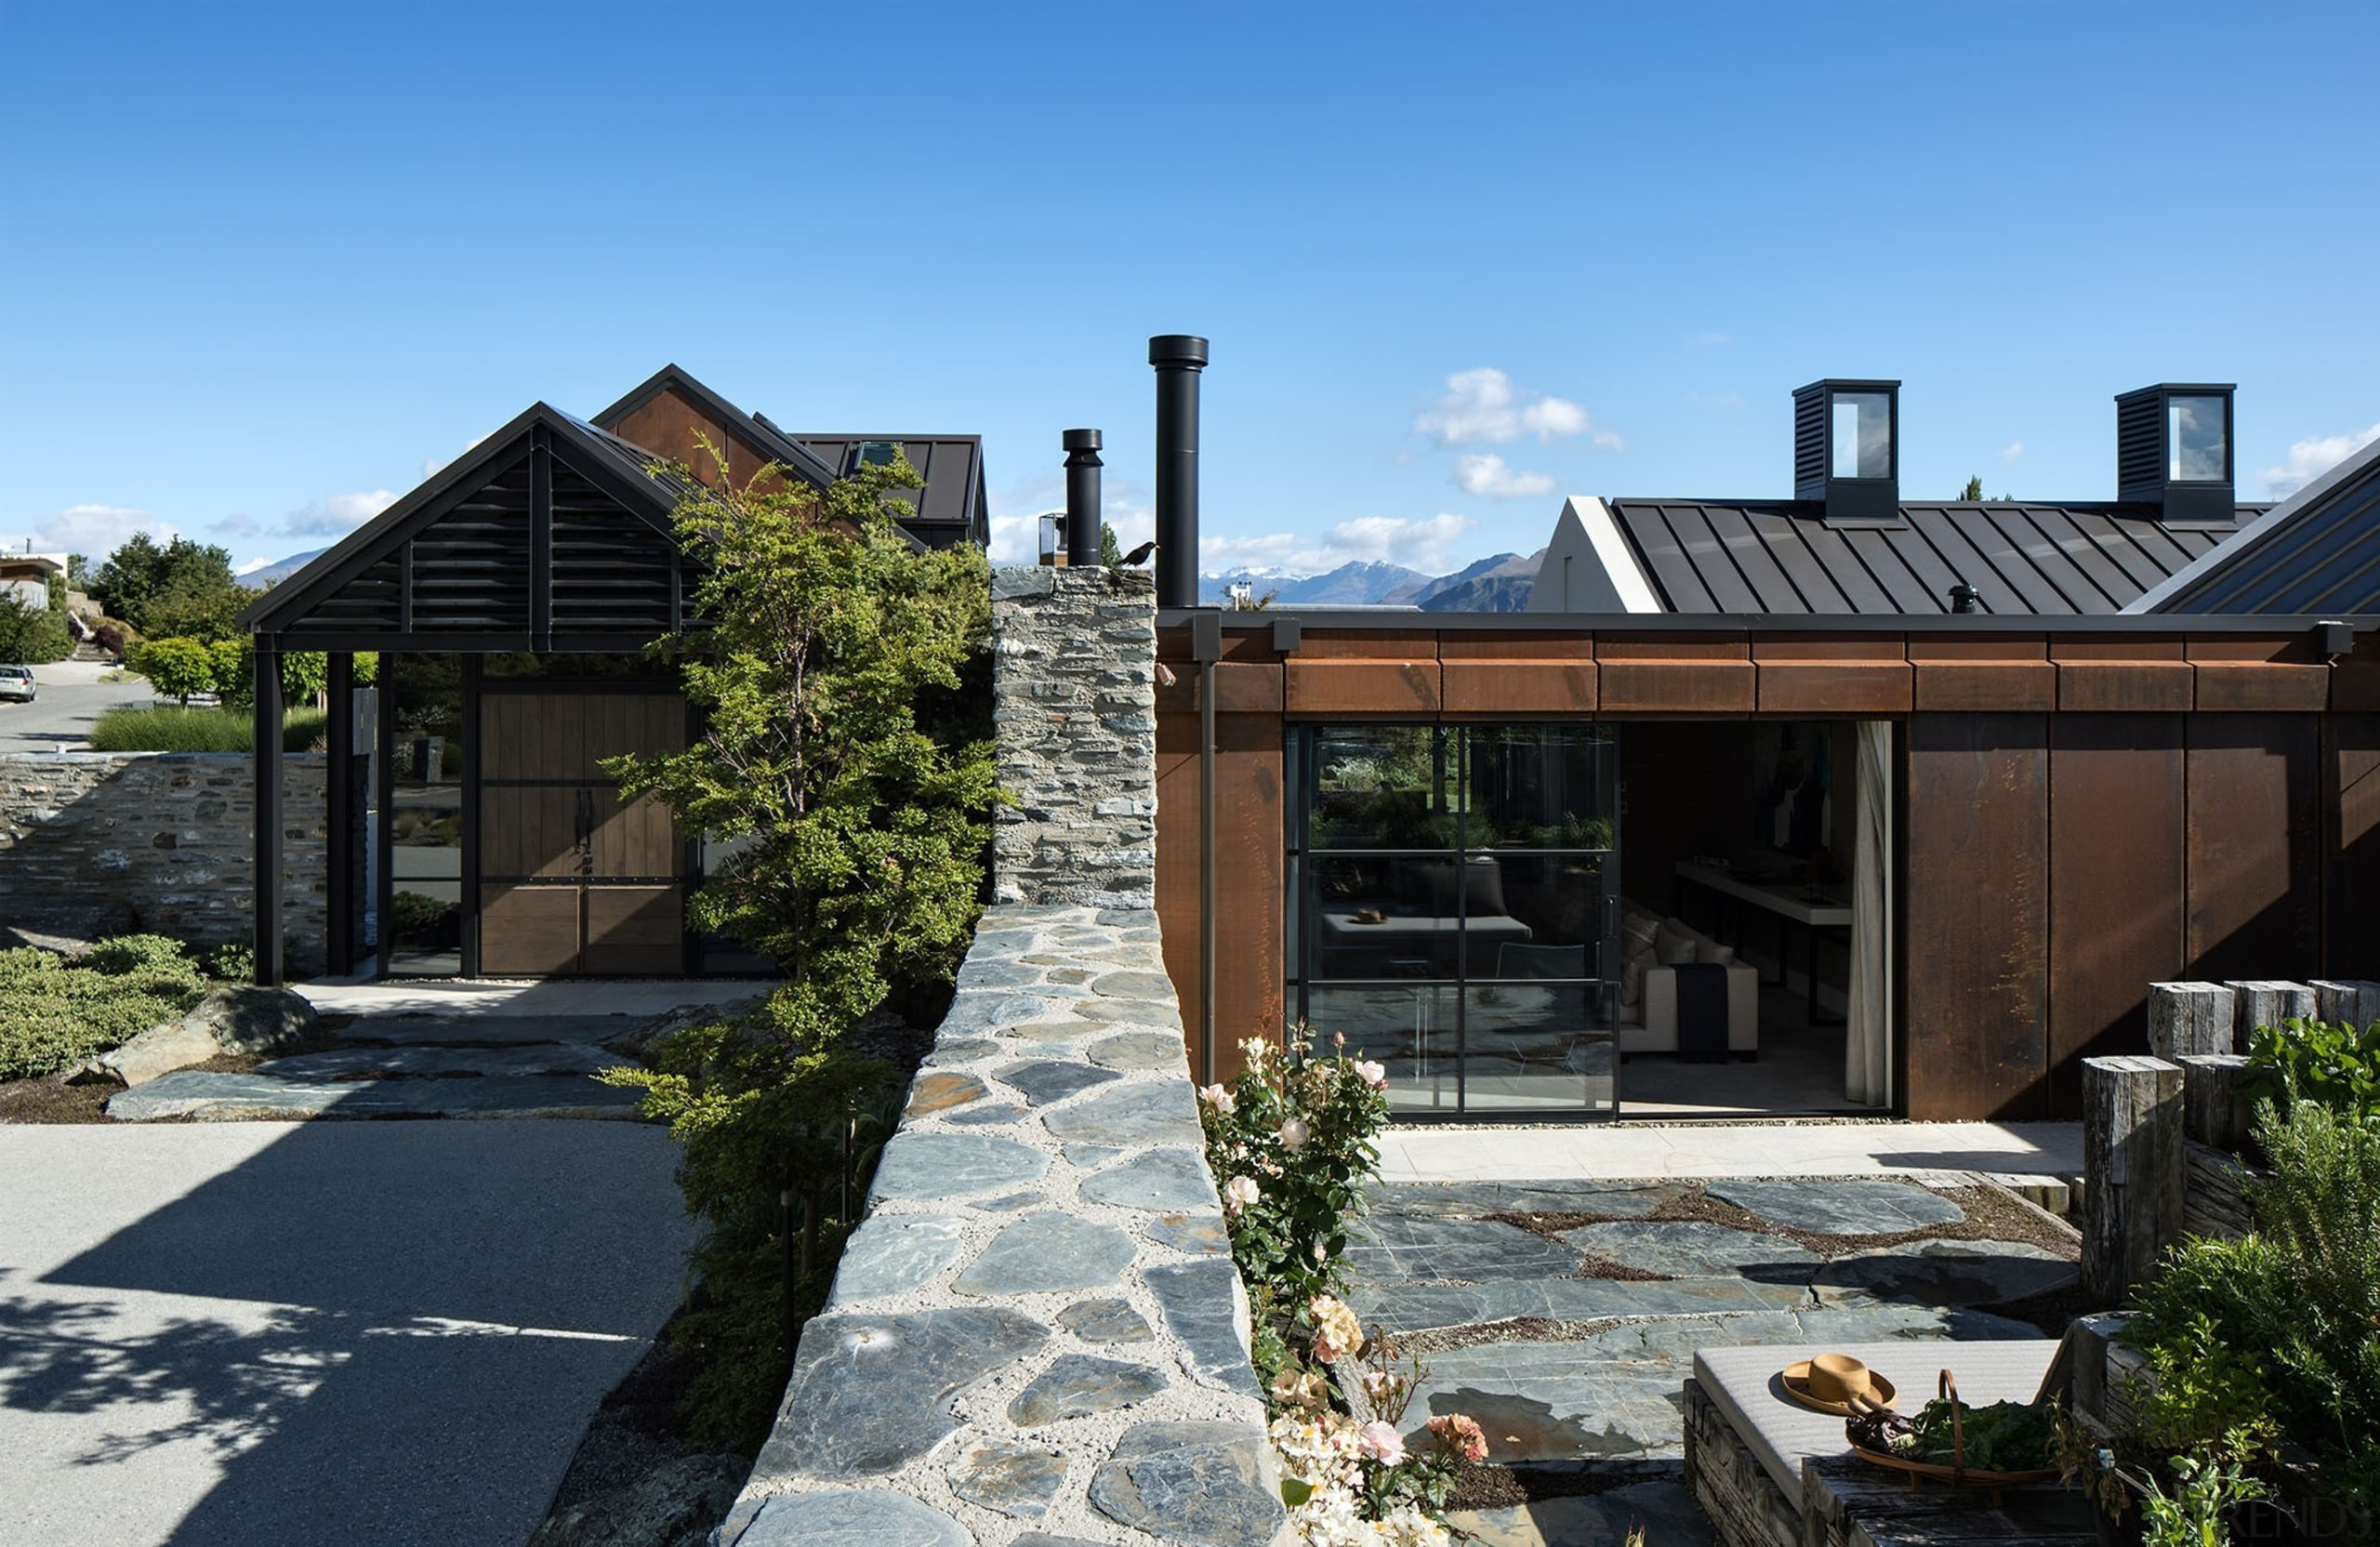 Bardon House - Sumich Chaplin - Bardon House architecture, cottage, estate, facade, home, house, outdoor structure, property, real estate, residential area, roof, siding, black, teal